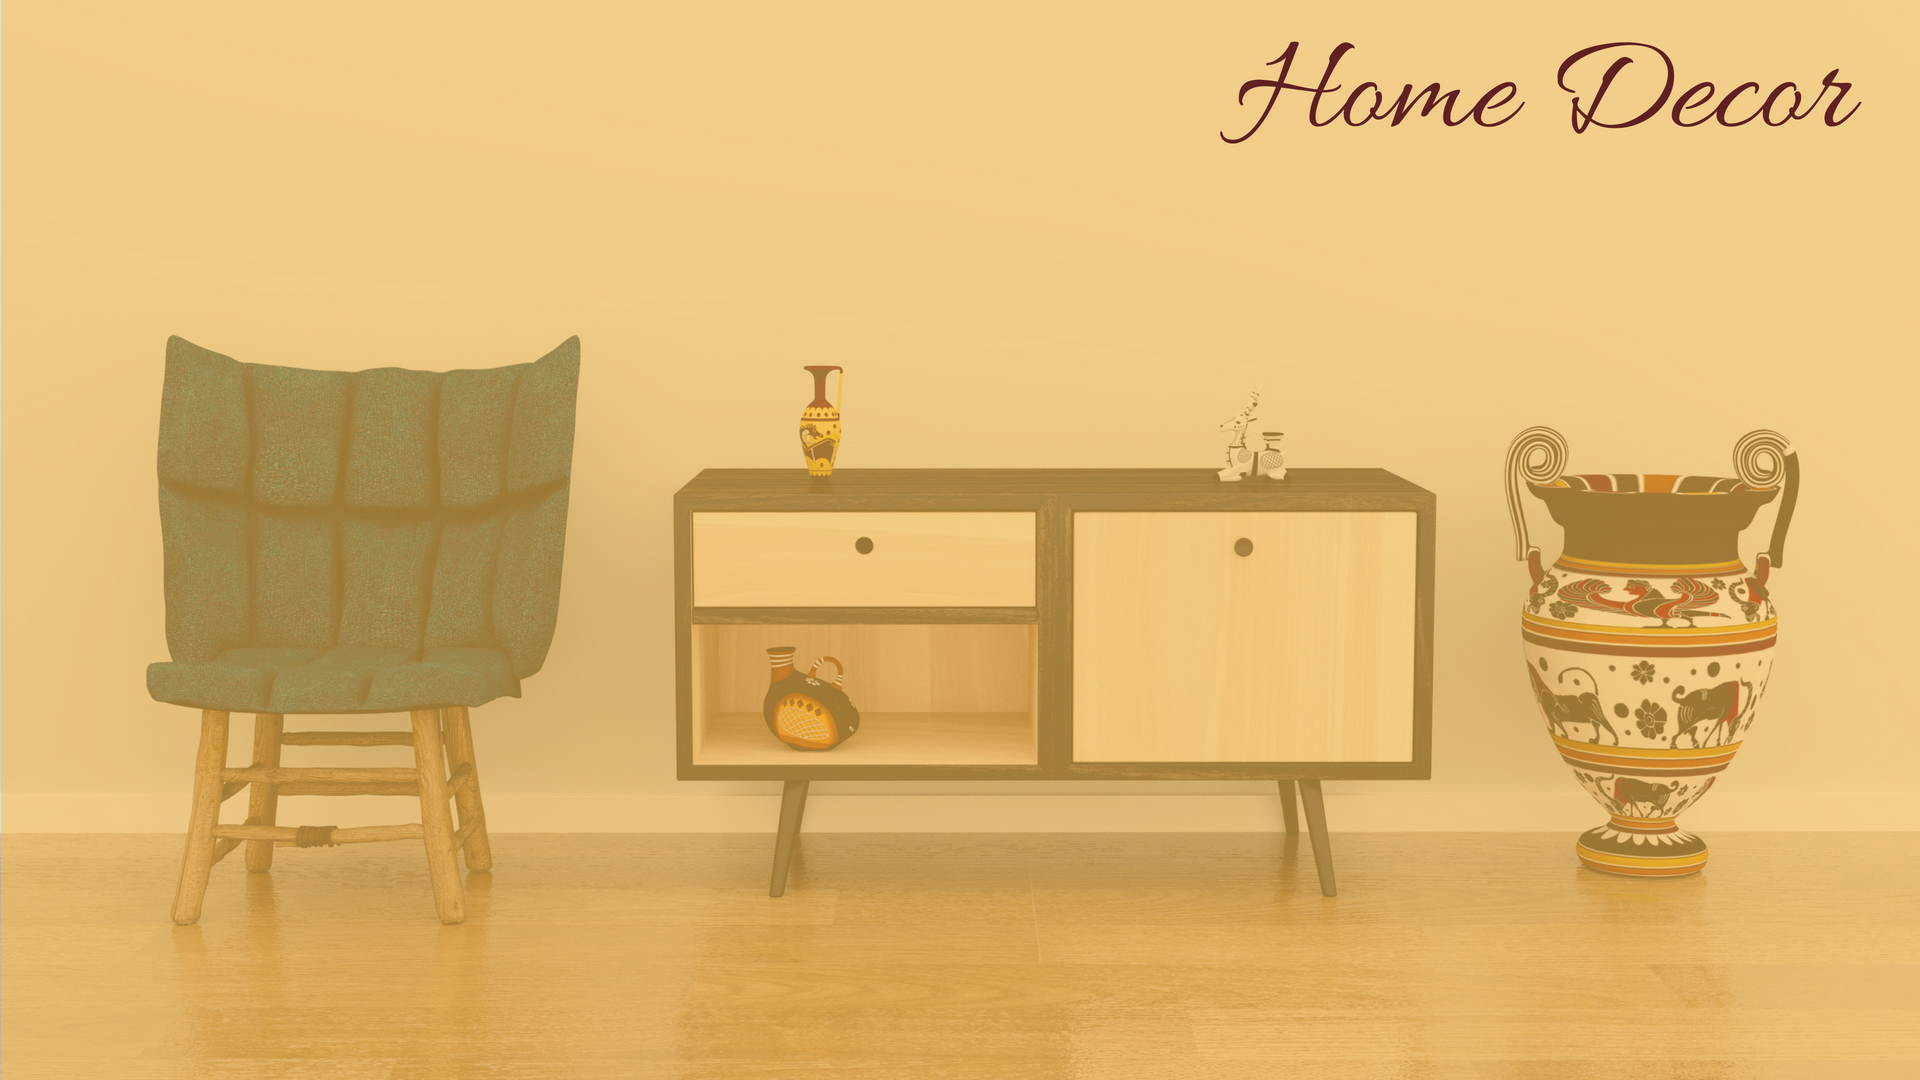 Home Decor App Inspired By The Poshmark Model